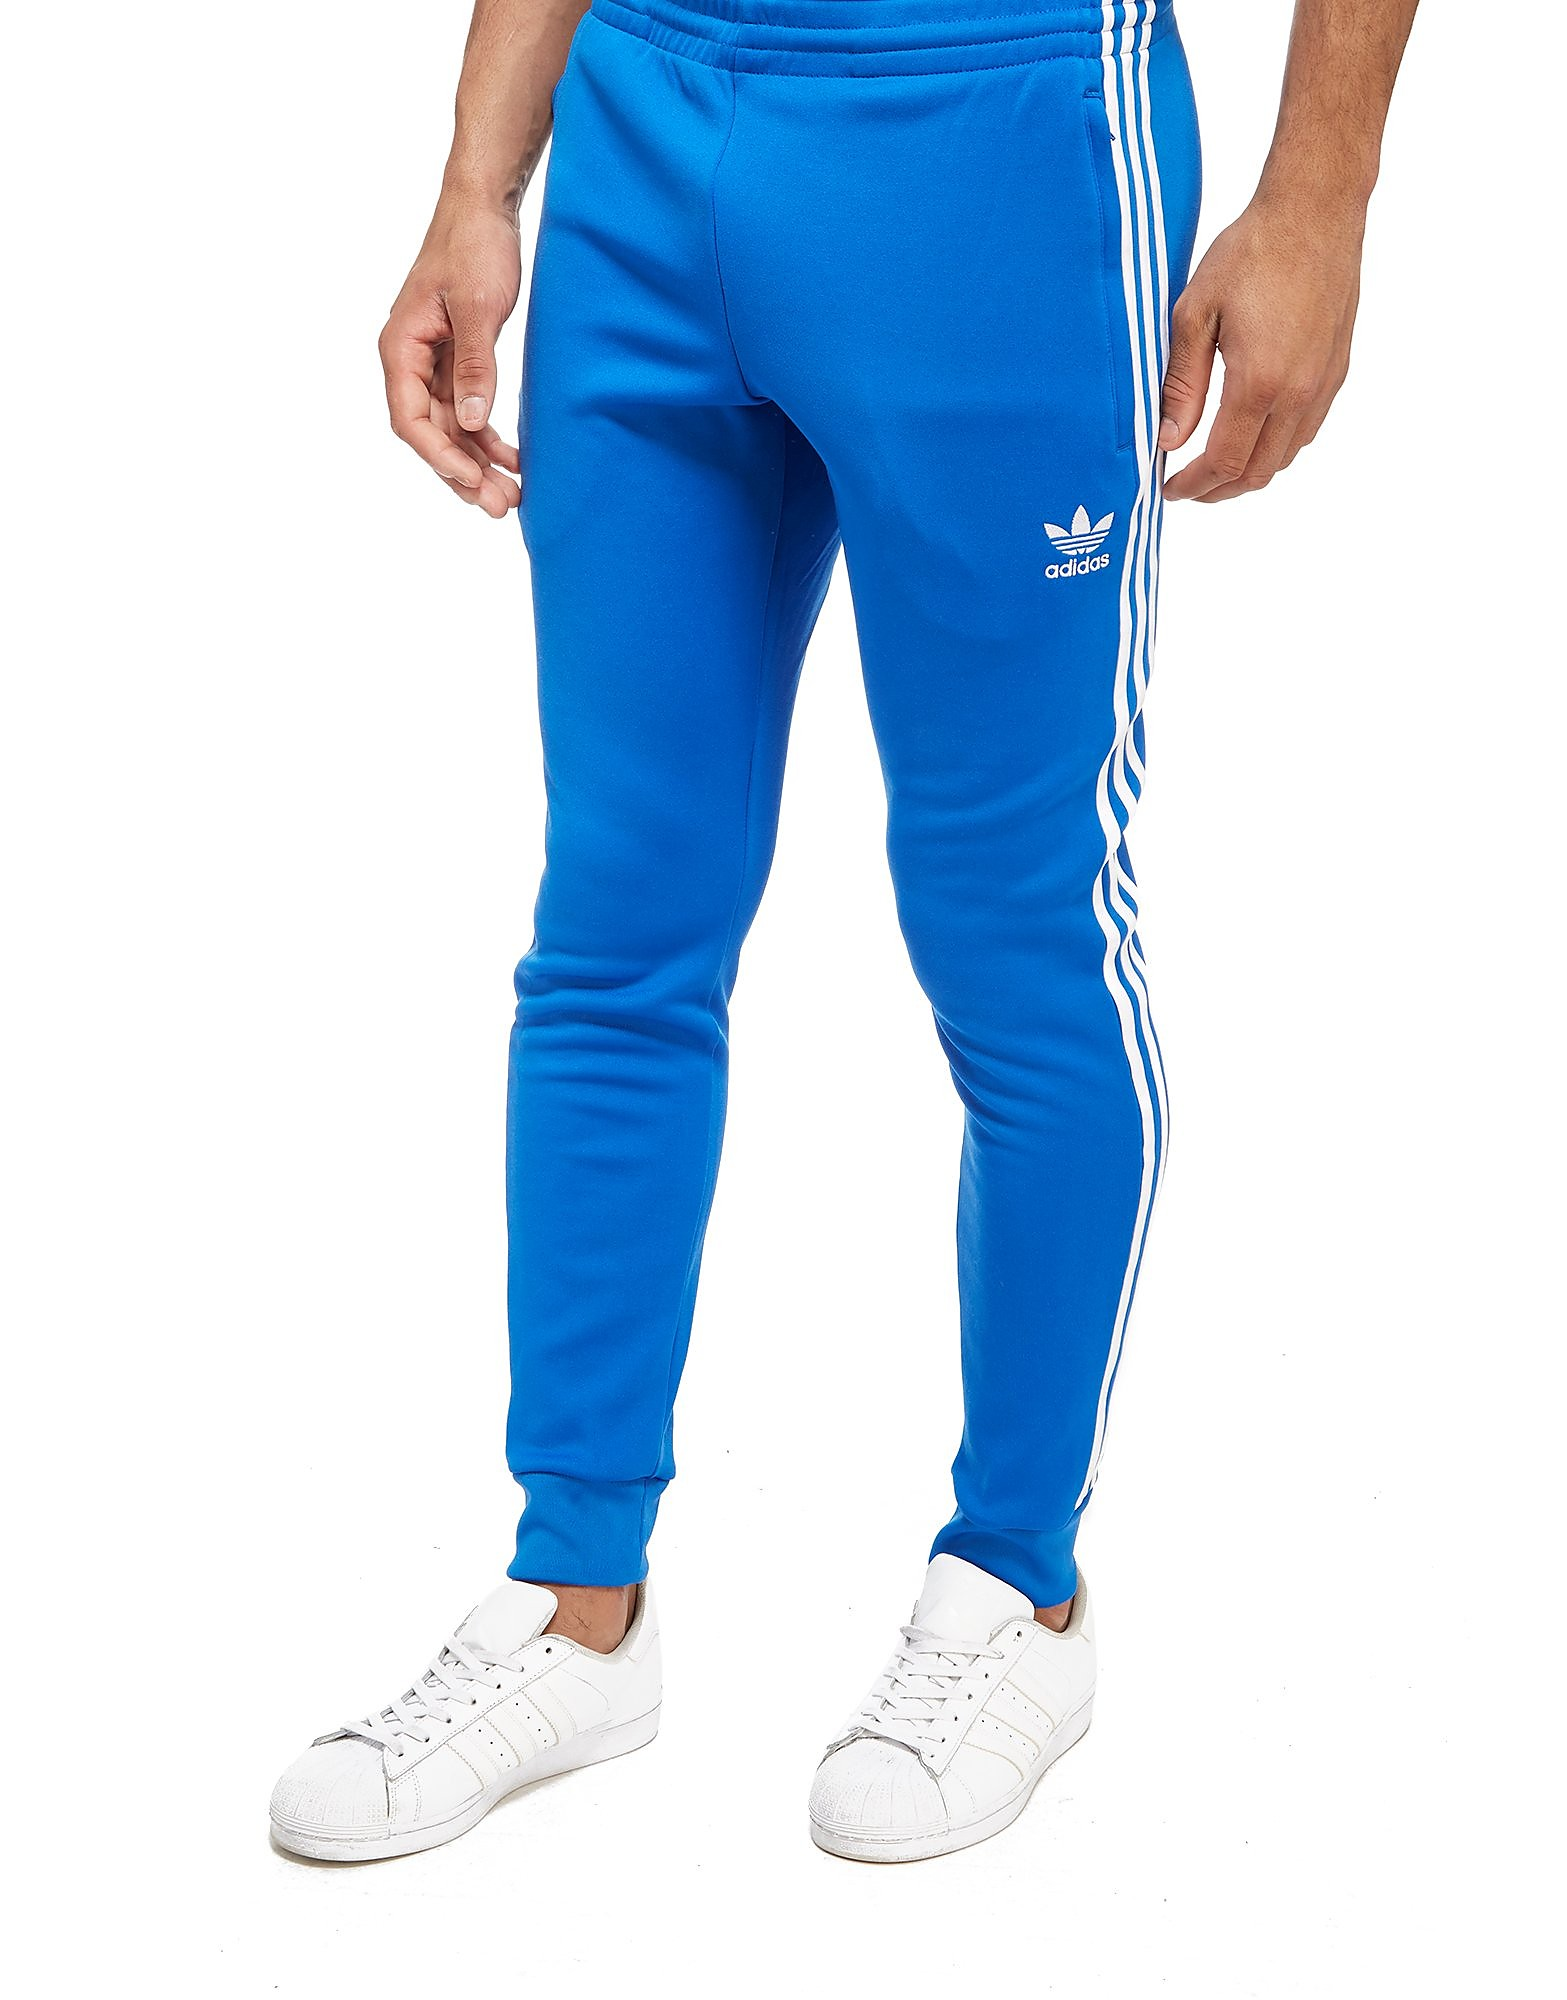 adidas Originals 3-Stripes Superstar Track Pants